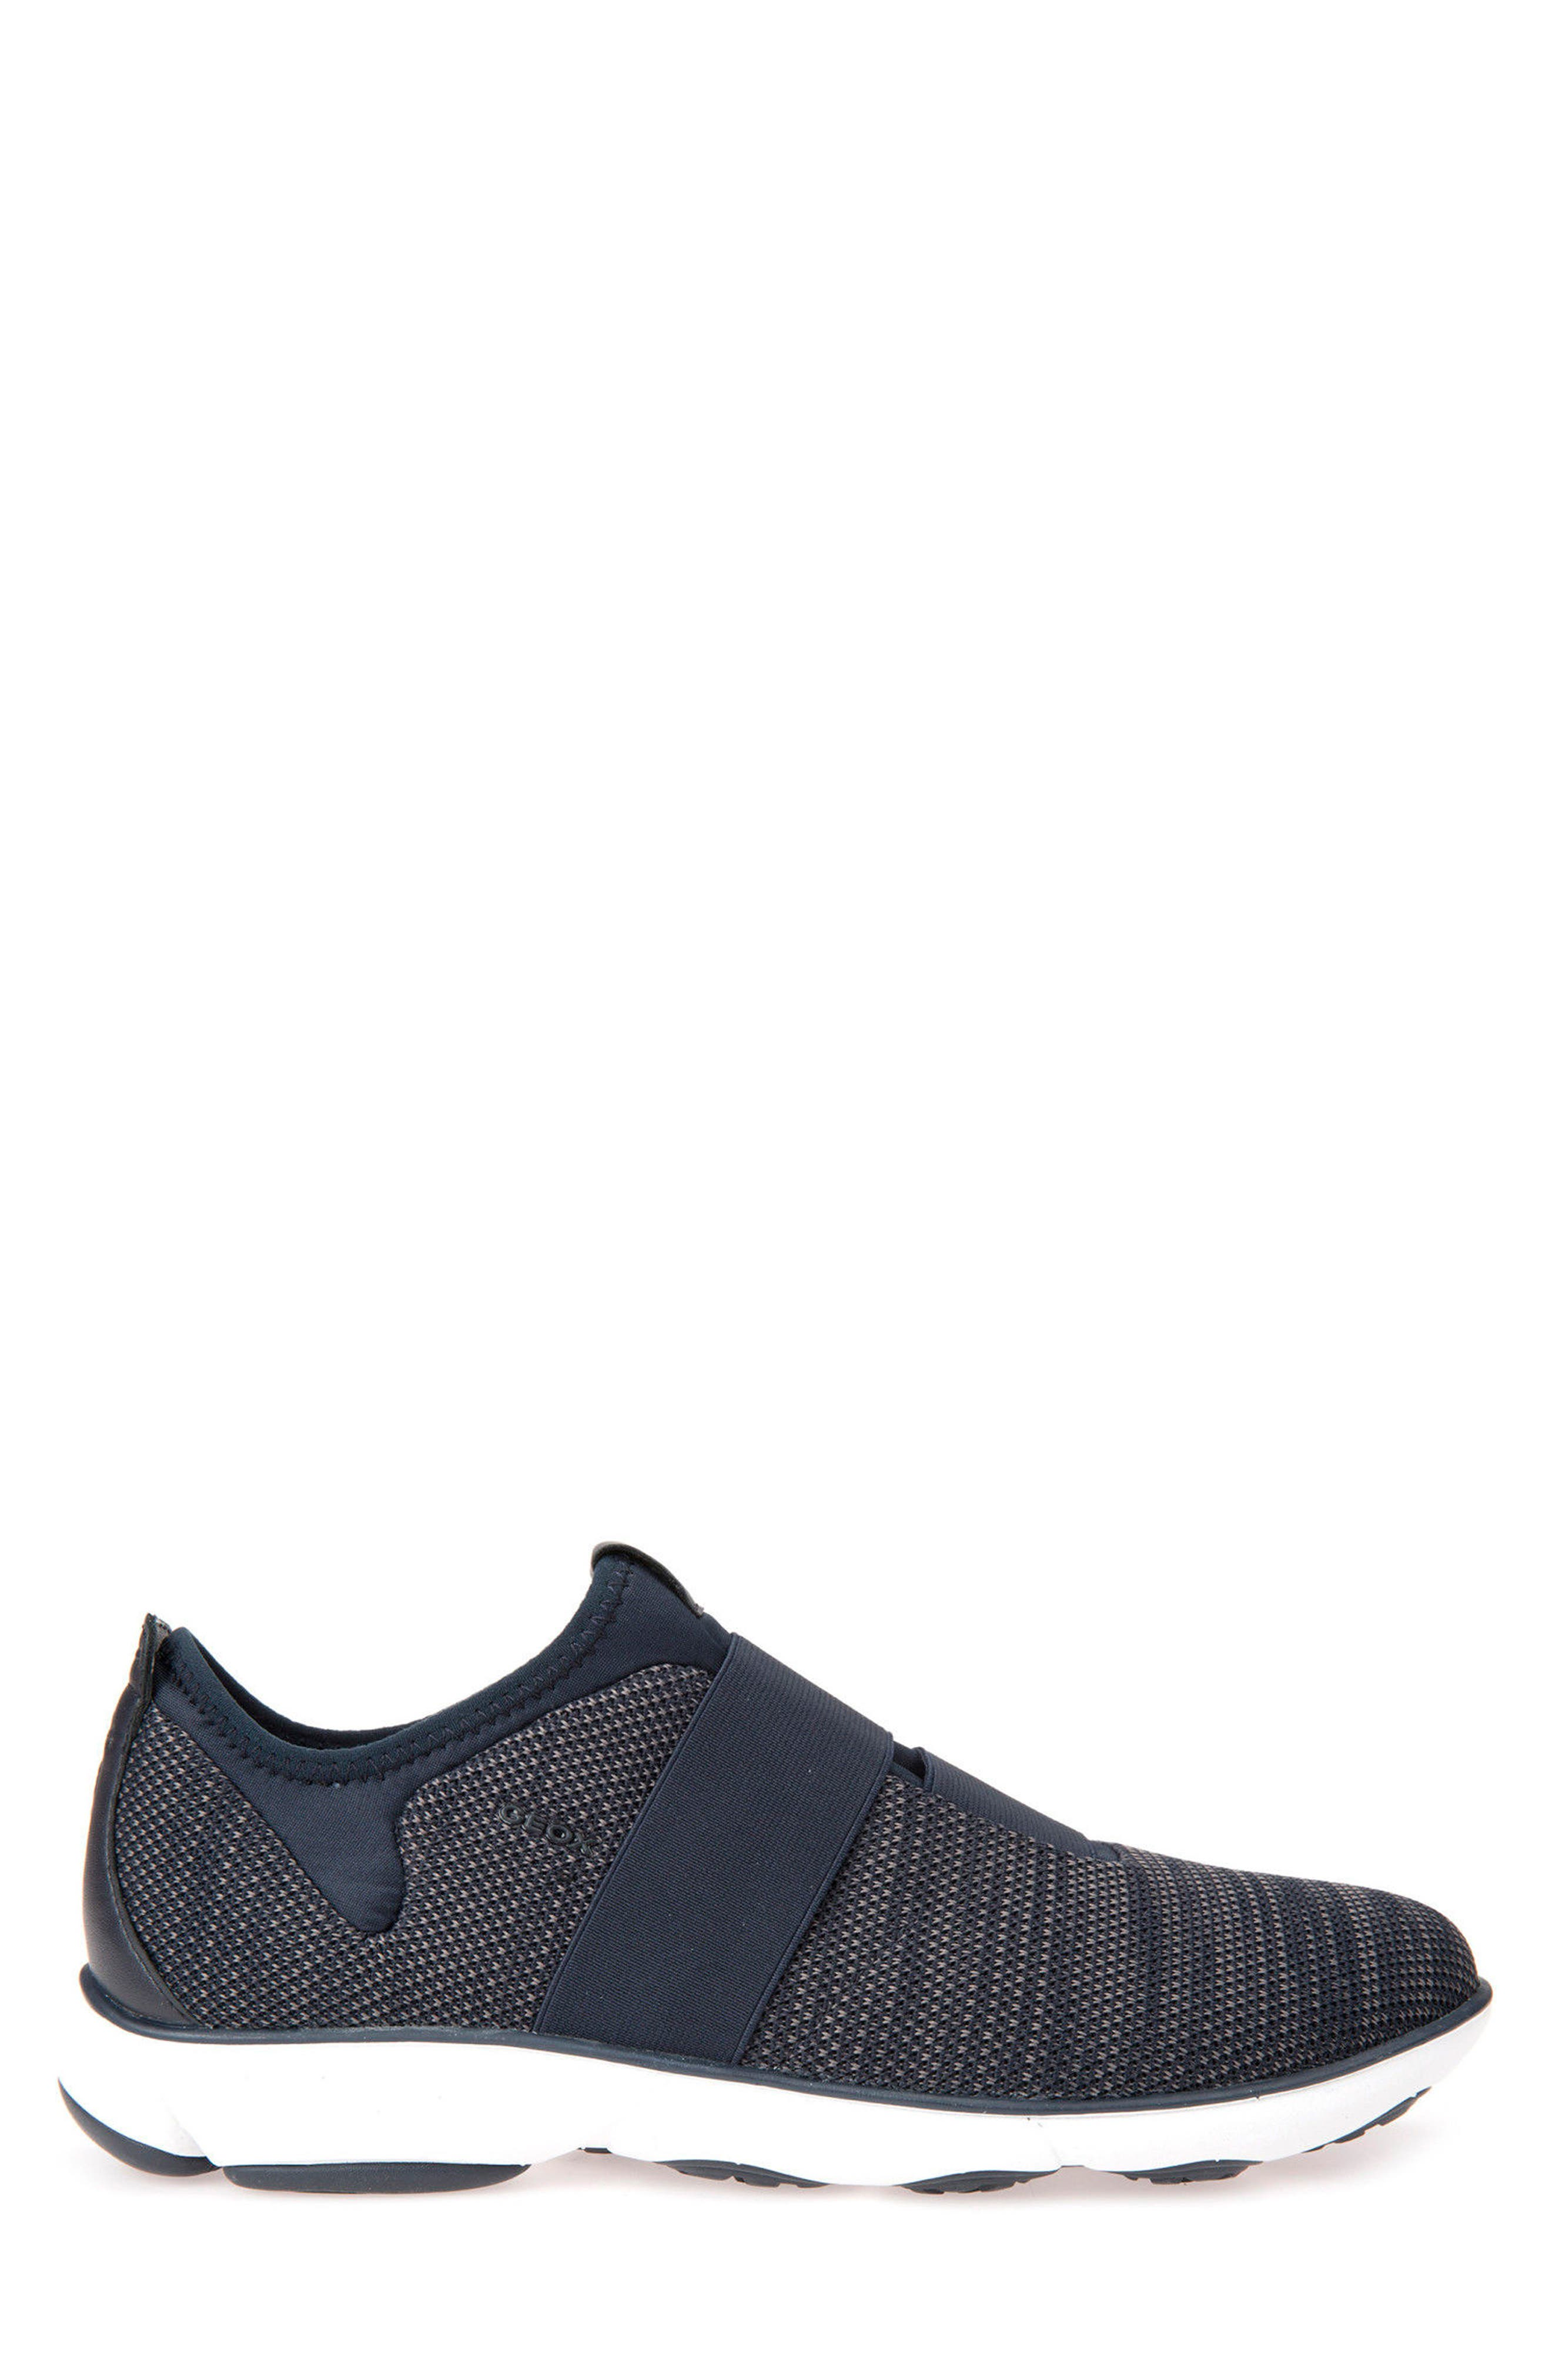 Nebula 45 Banded Slip-On Sneaker,                             Alternate thumbnail 3, color,                             Navy